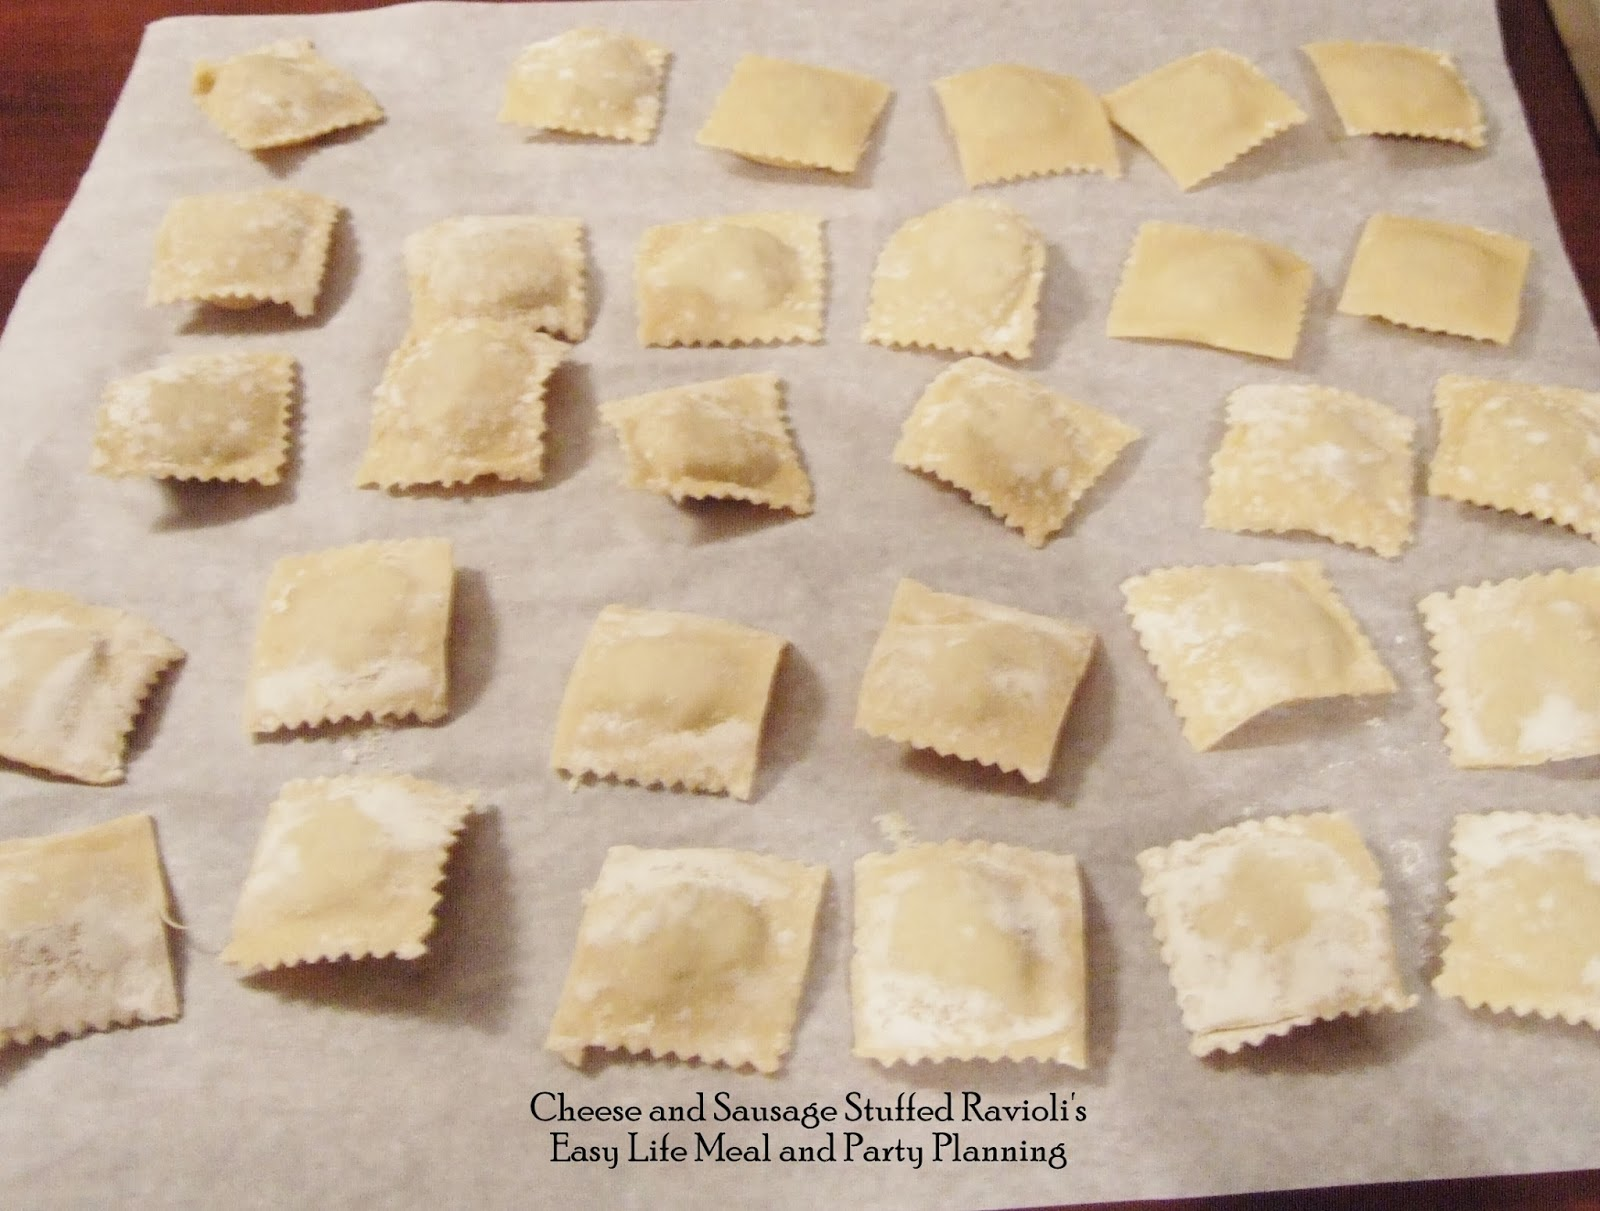 Cheese and Sausage Stuffed Raviolis by Easy Life Meal and Party Planning